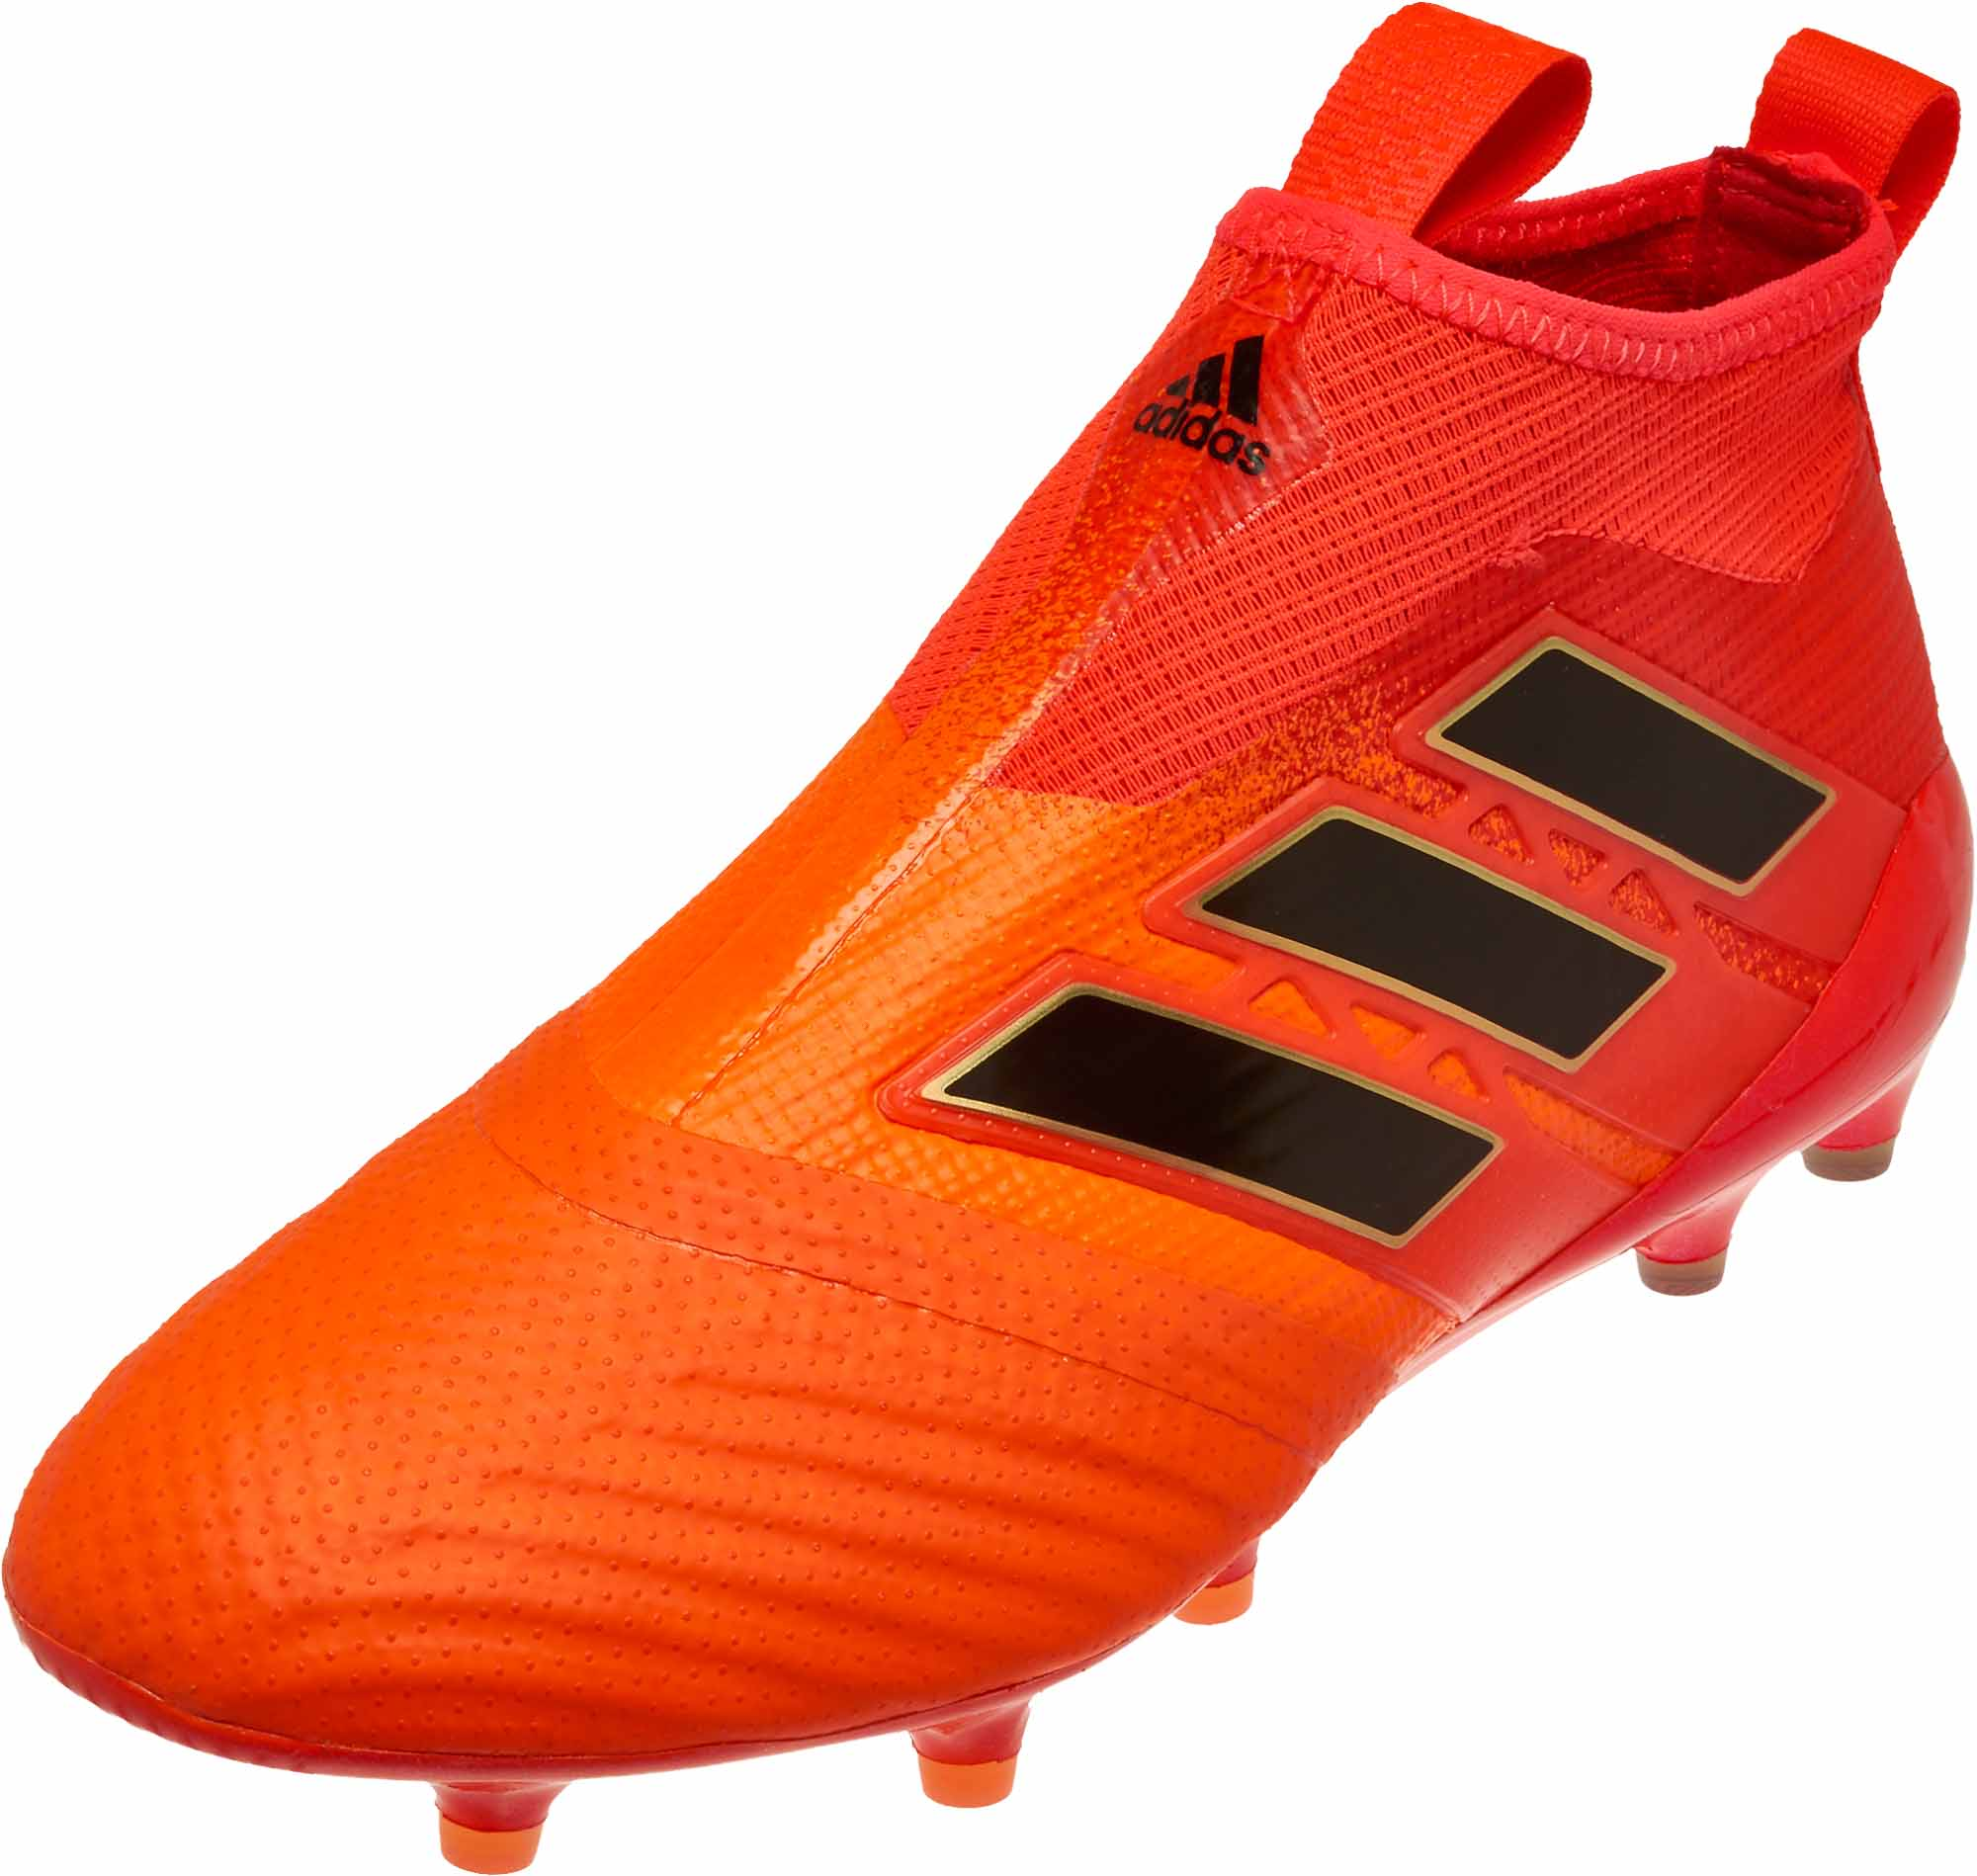 b57c550d7 adidas ACE 17+ Purecontrol FG Soccer Cleats – Solar Orange   Core Black